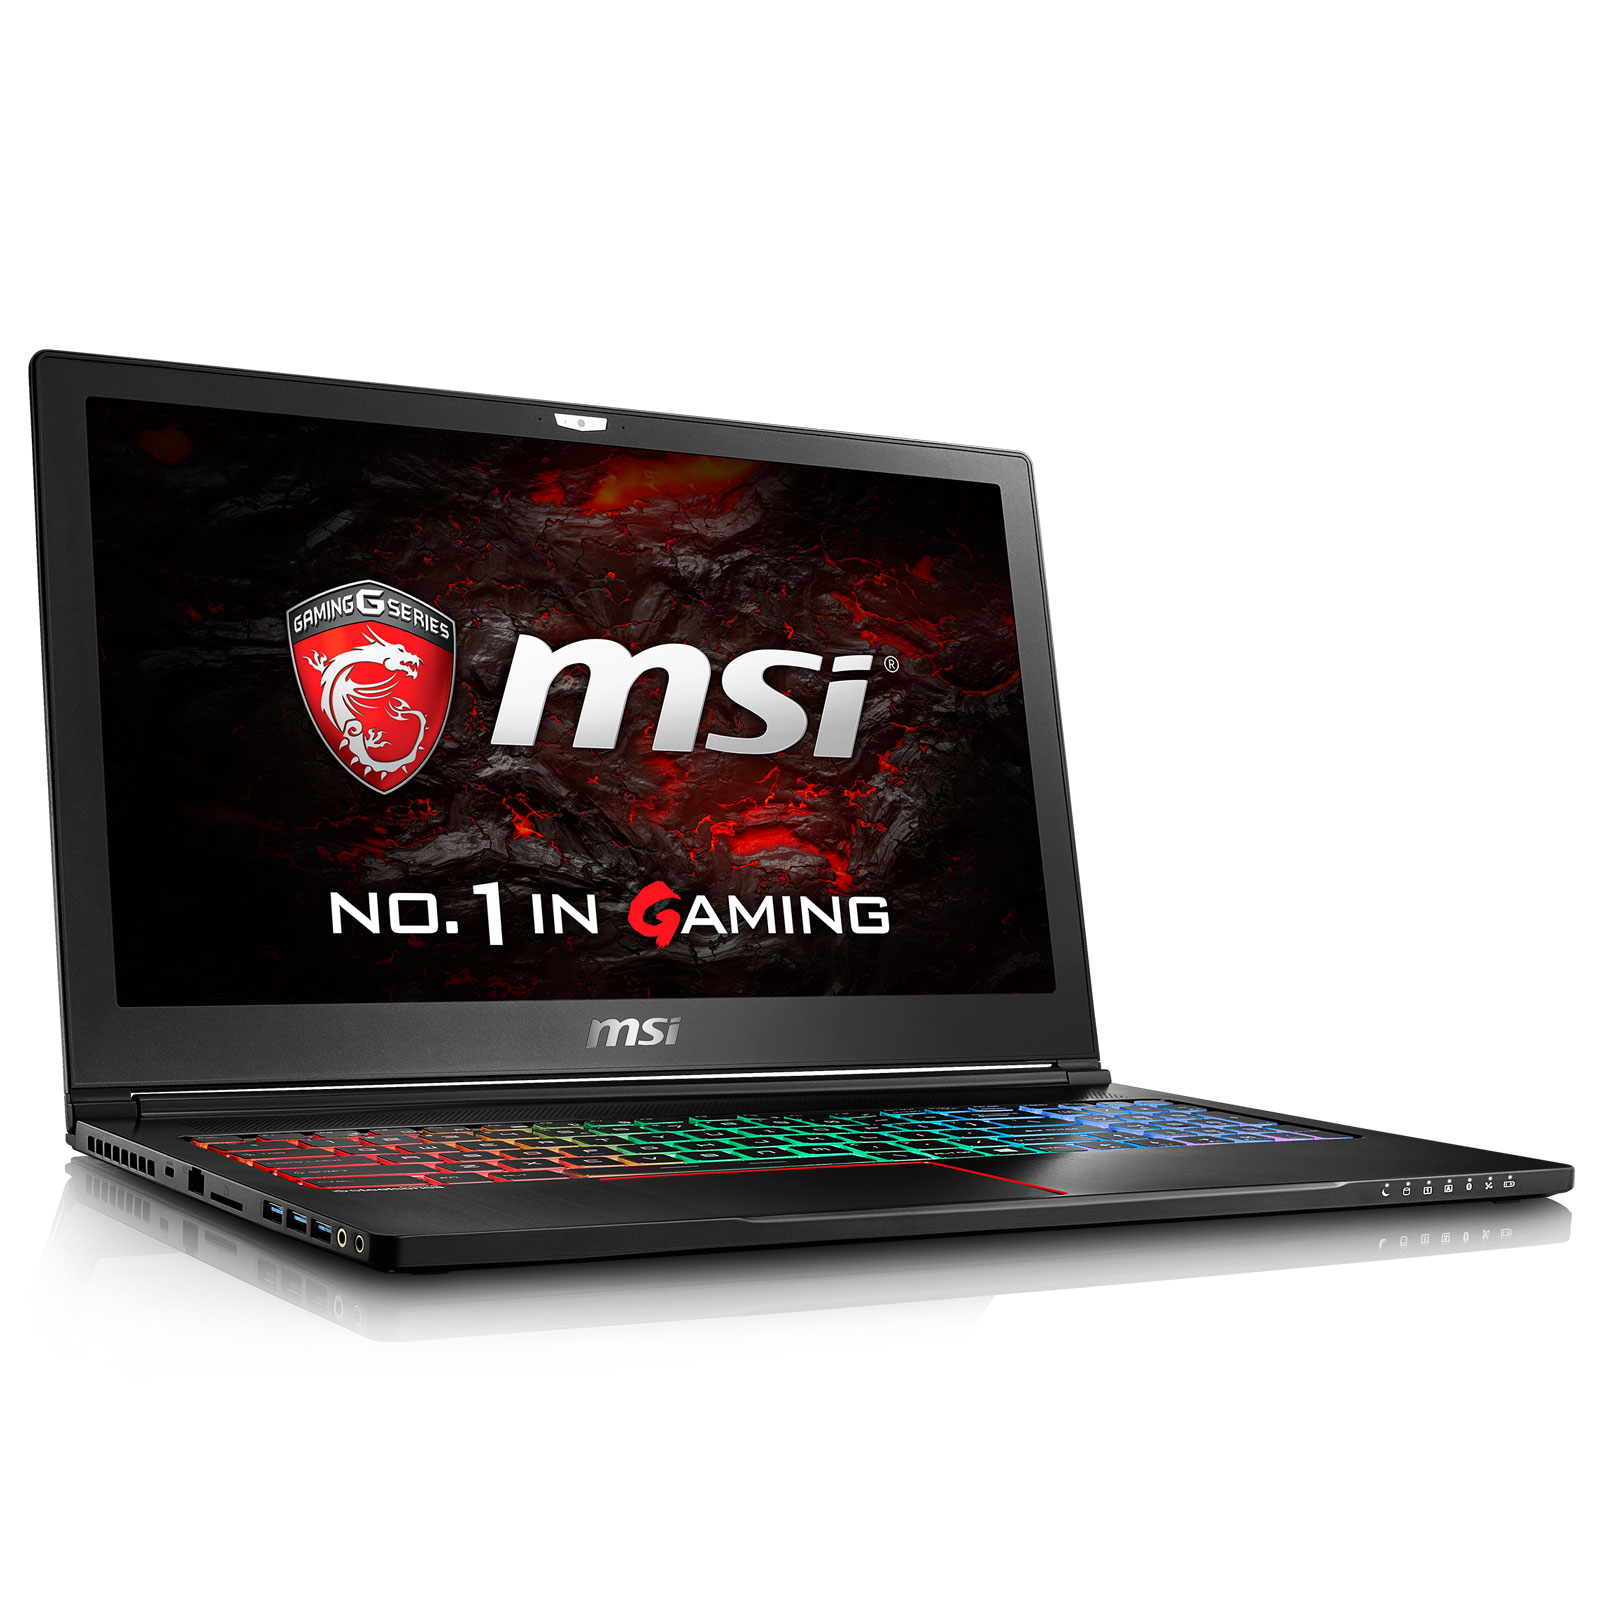 "PC portable MSI GS63VR 7RG-008FR Stealth Pro 4K Intel Core i7-7700HQ 16 Go SSD 512 Go + HDD 2 To 15.6"" LED Ultra HD NVIDIA GeForce GTX 1070 8 Go Wi-Fi AC/Bluetooth Webcam Windows 10 Famille 64 bits (garantie constructeur 2 ans)"